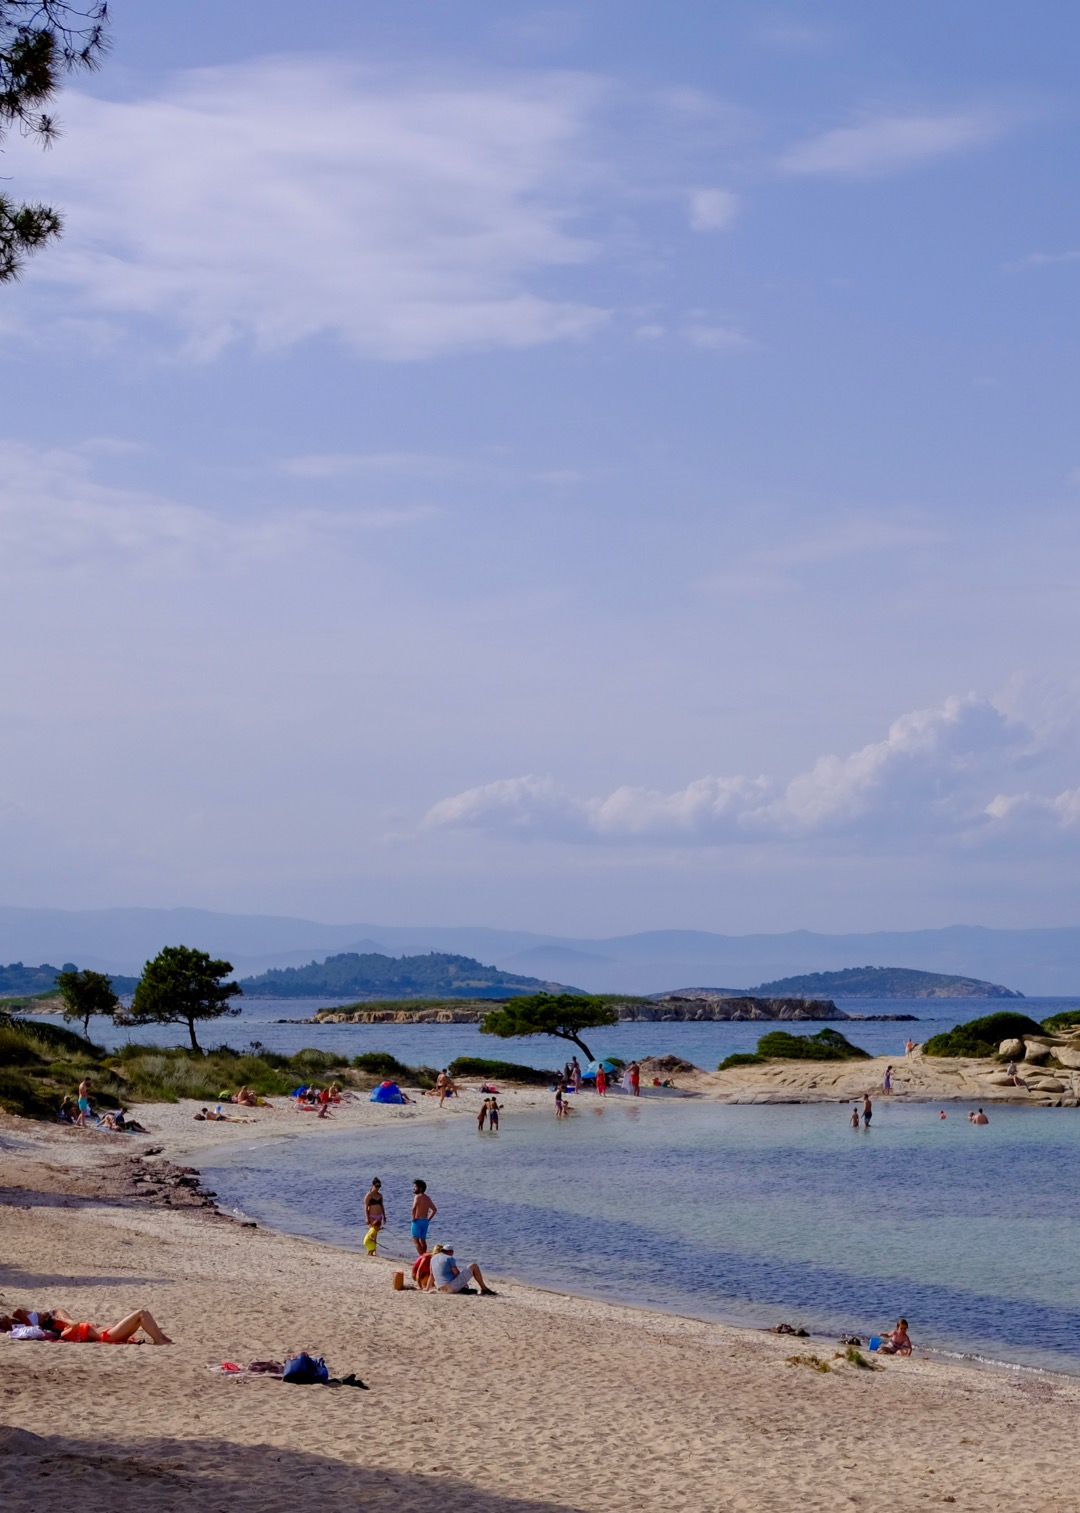 Karidi (Karydi) Beach on Vourvourou, Sithonia, Greece